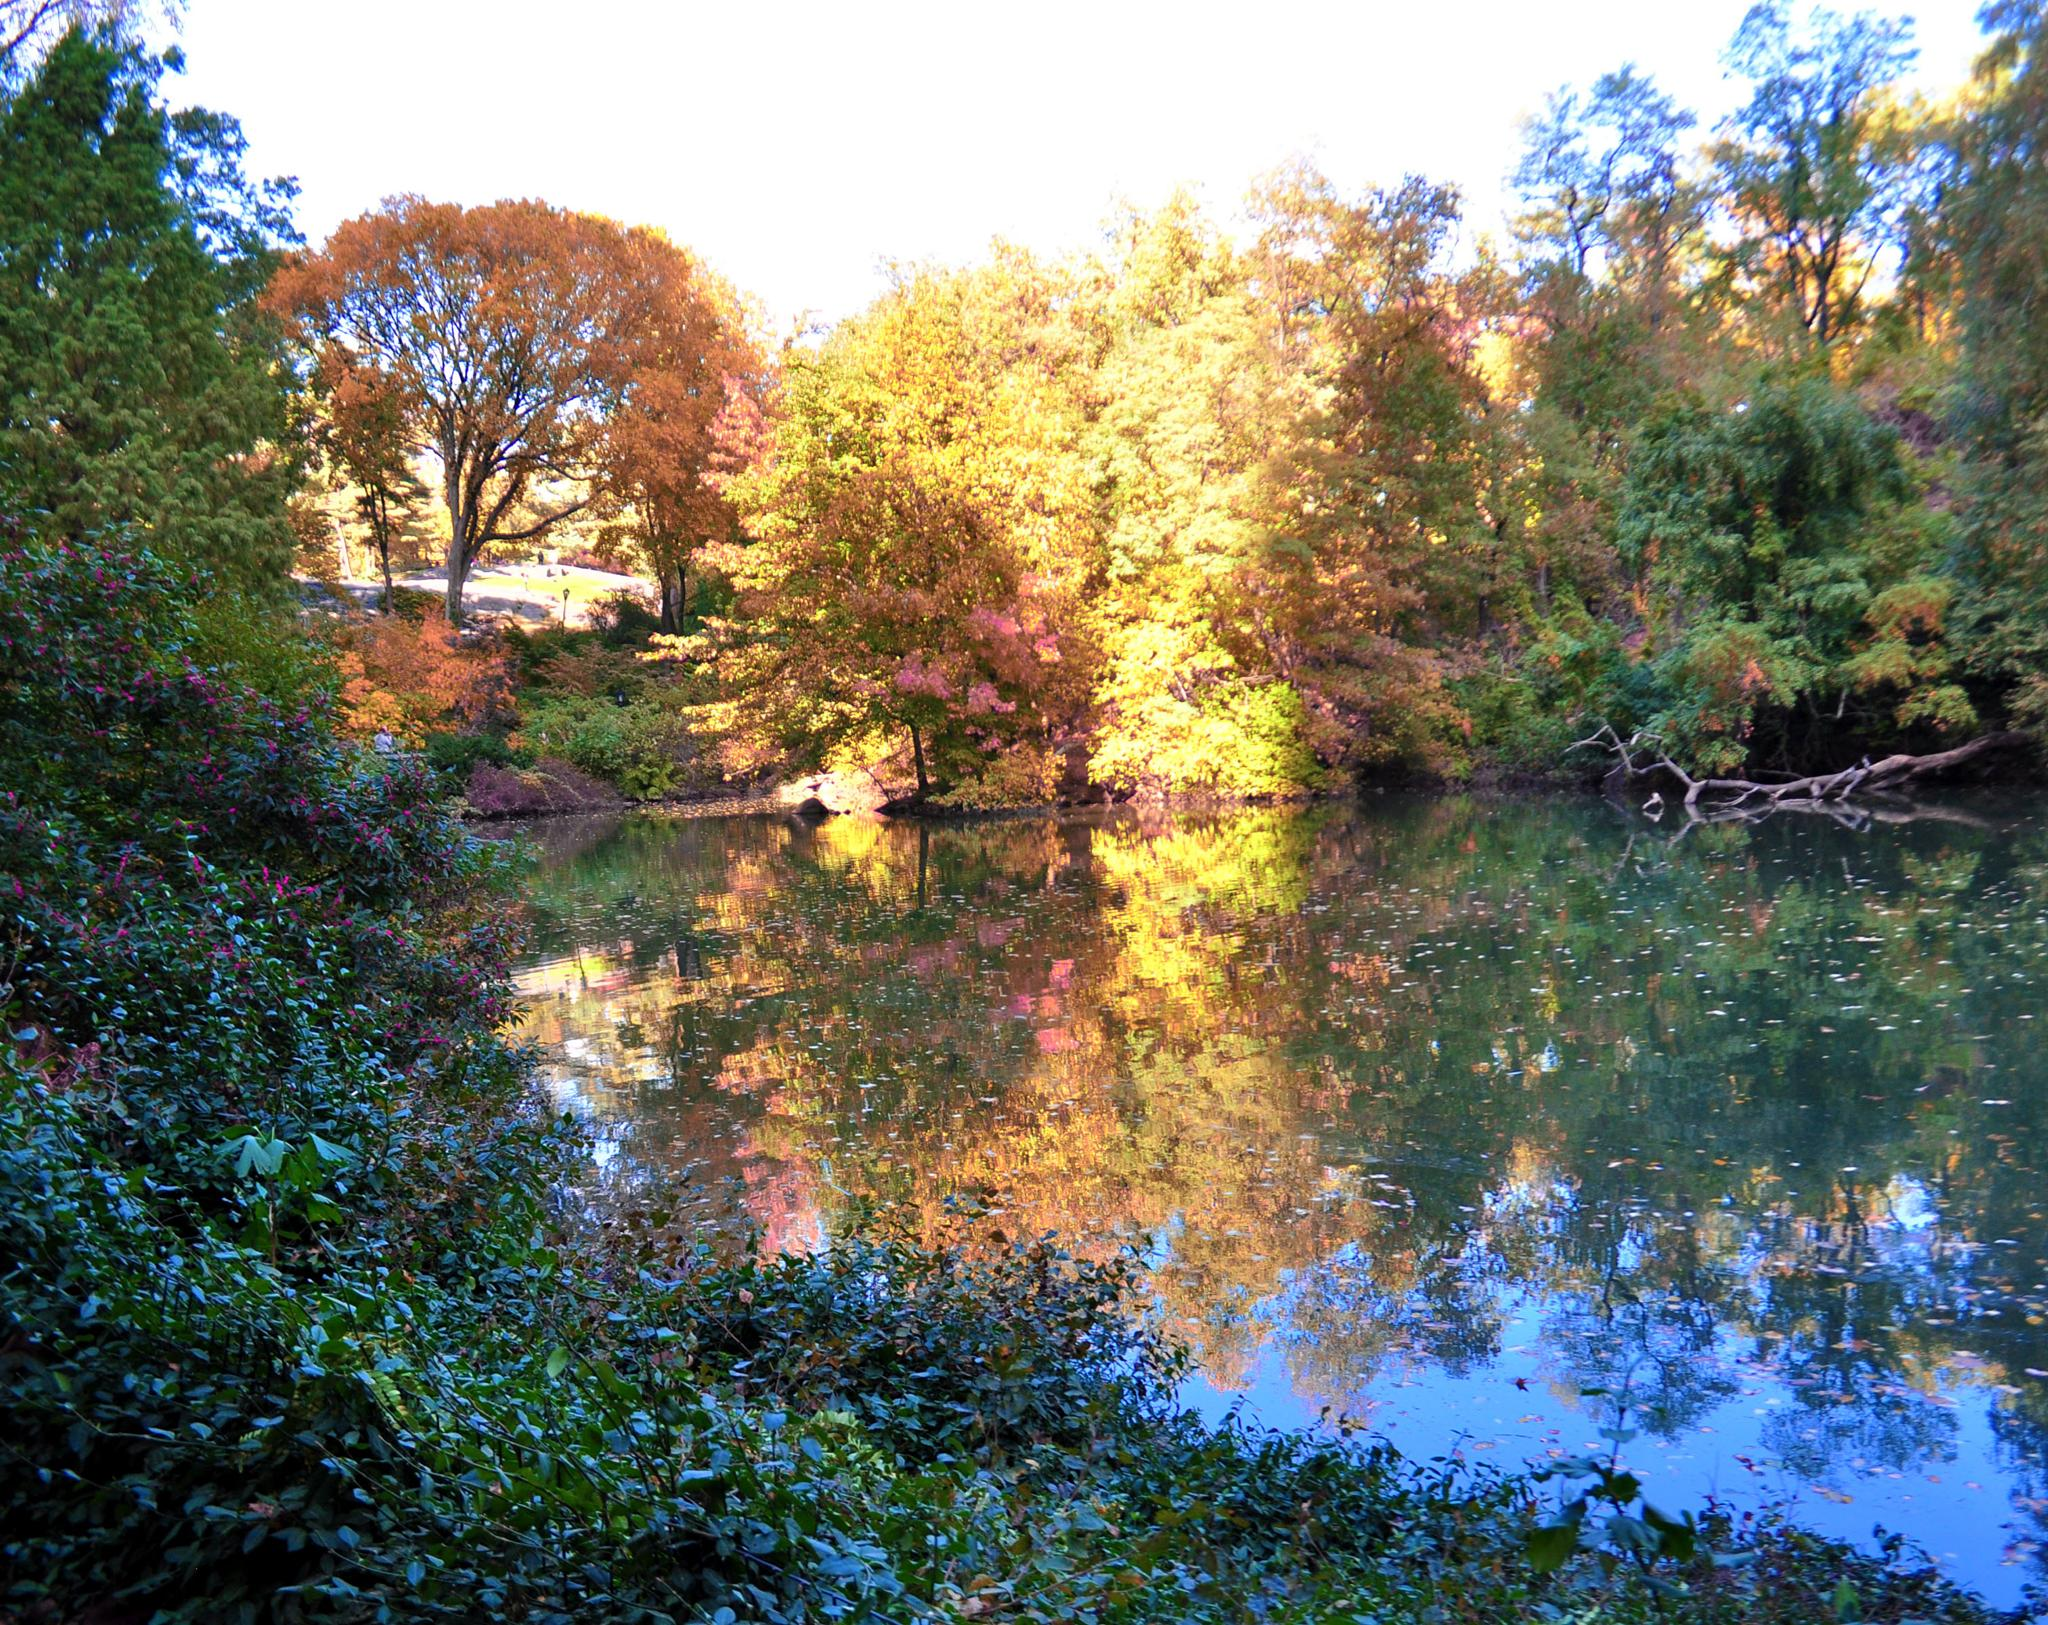 Autumn lake in Central Park by pamsheedy